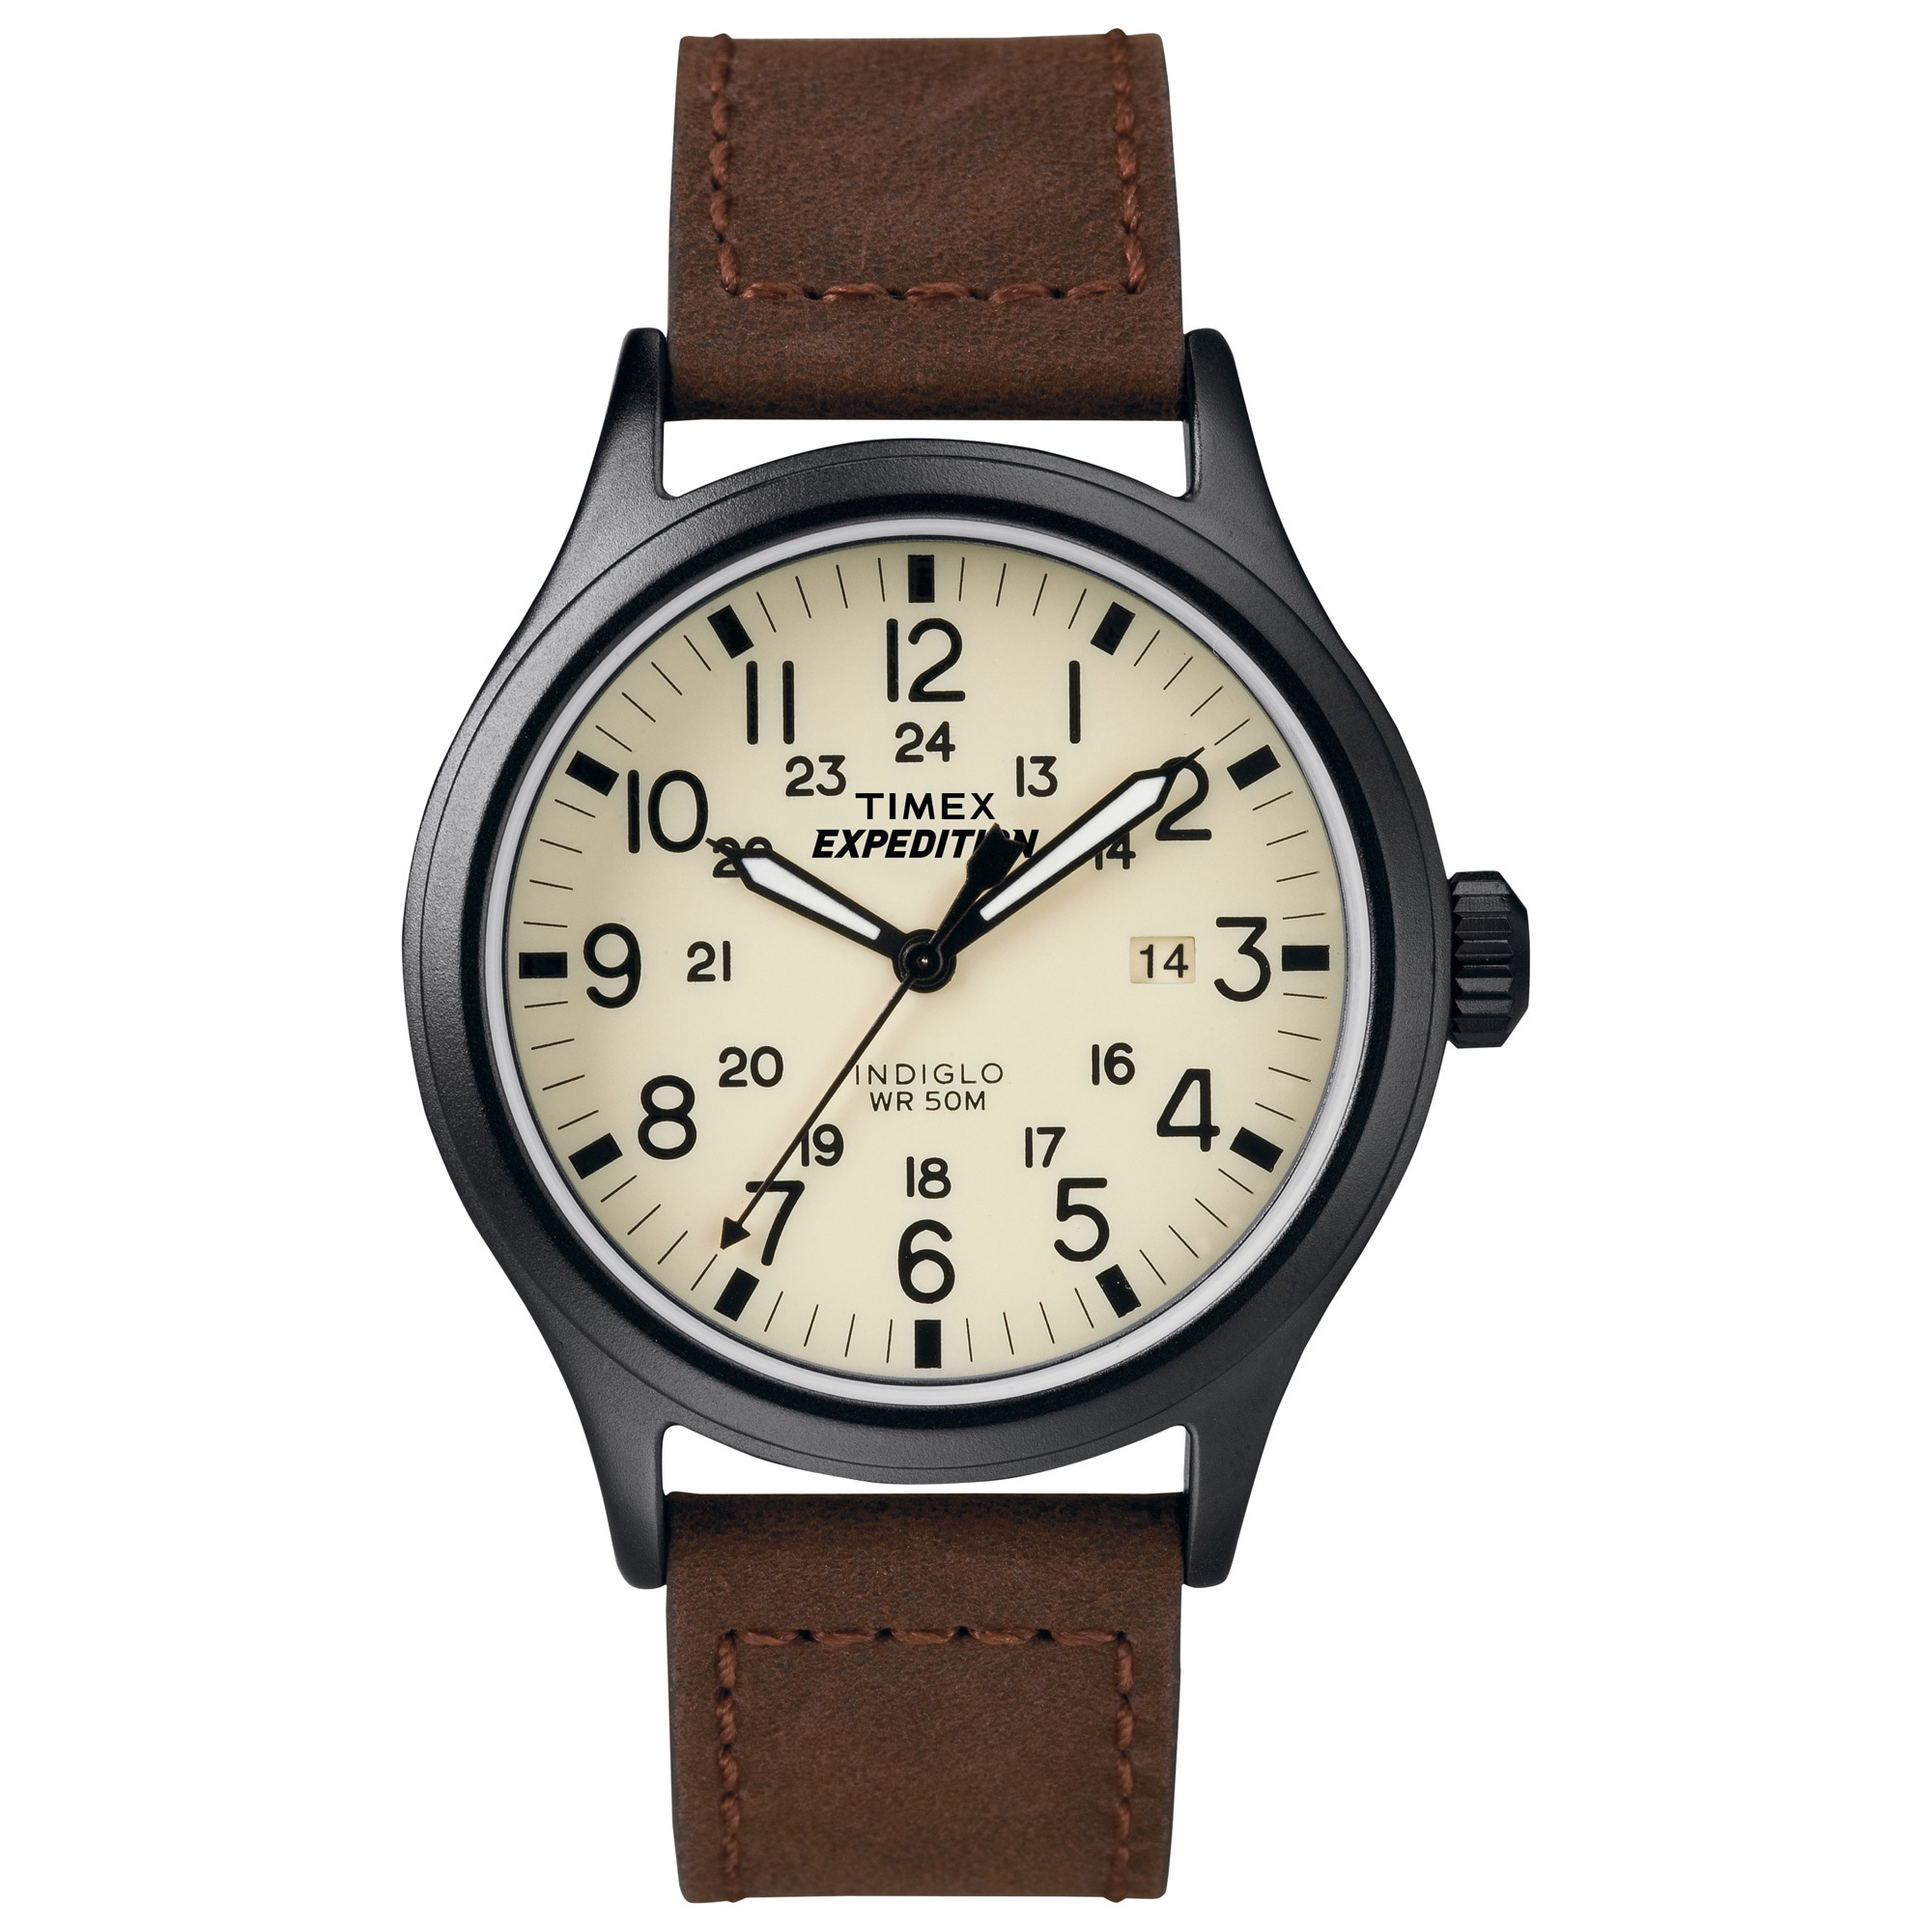 the pin brown tone watch white measures face fashion watches beautiful thin is case leather ultra dial x band with gunmetal index